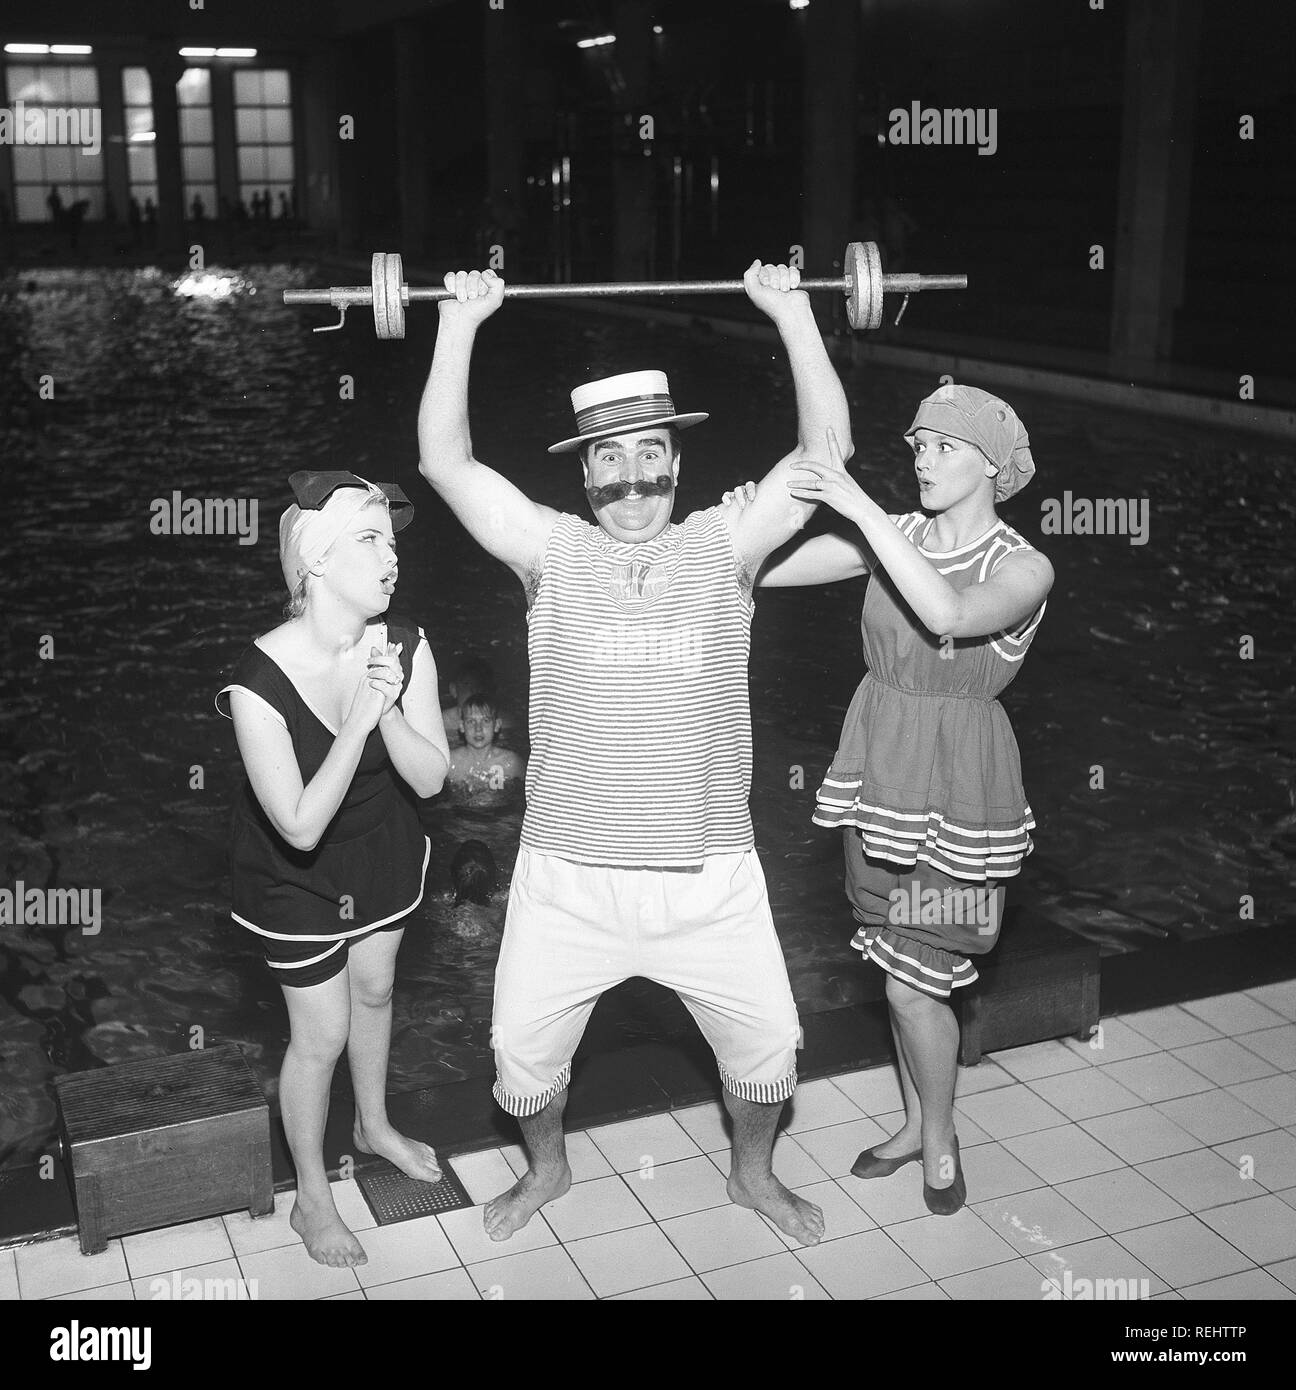 Fun in the 1950s. Two young woman in historical 1920s looking bathingsuits admire the strength of a man lifting a barbell. Although judging from the looks of the weights on it, it appears he's probably not so strong in his arms. Sweden 1950s. Photo Kristoffersson ref BT9-9 - Stock Image